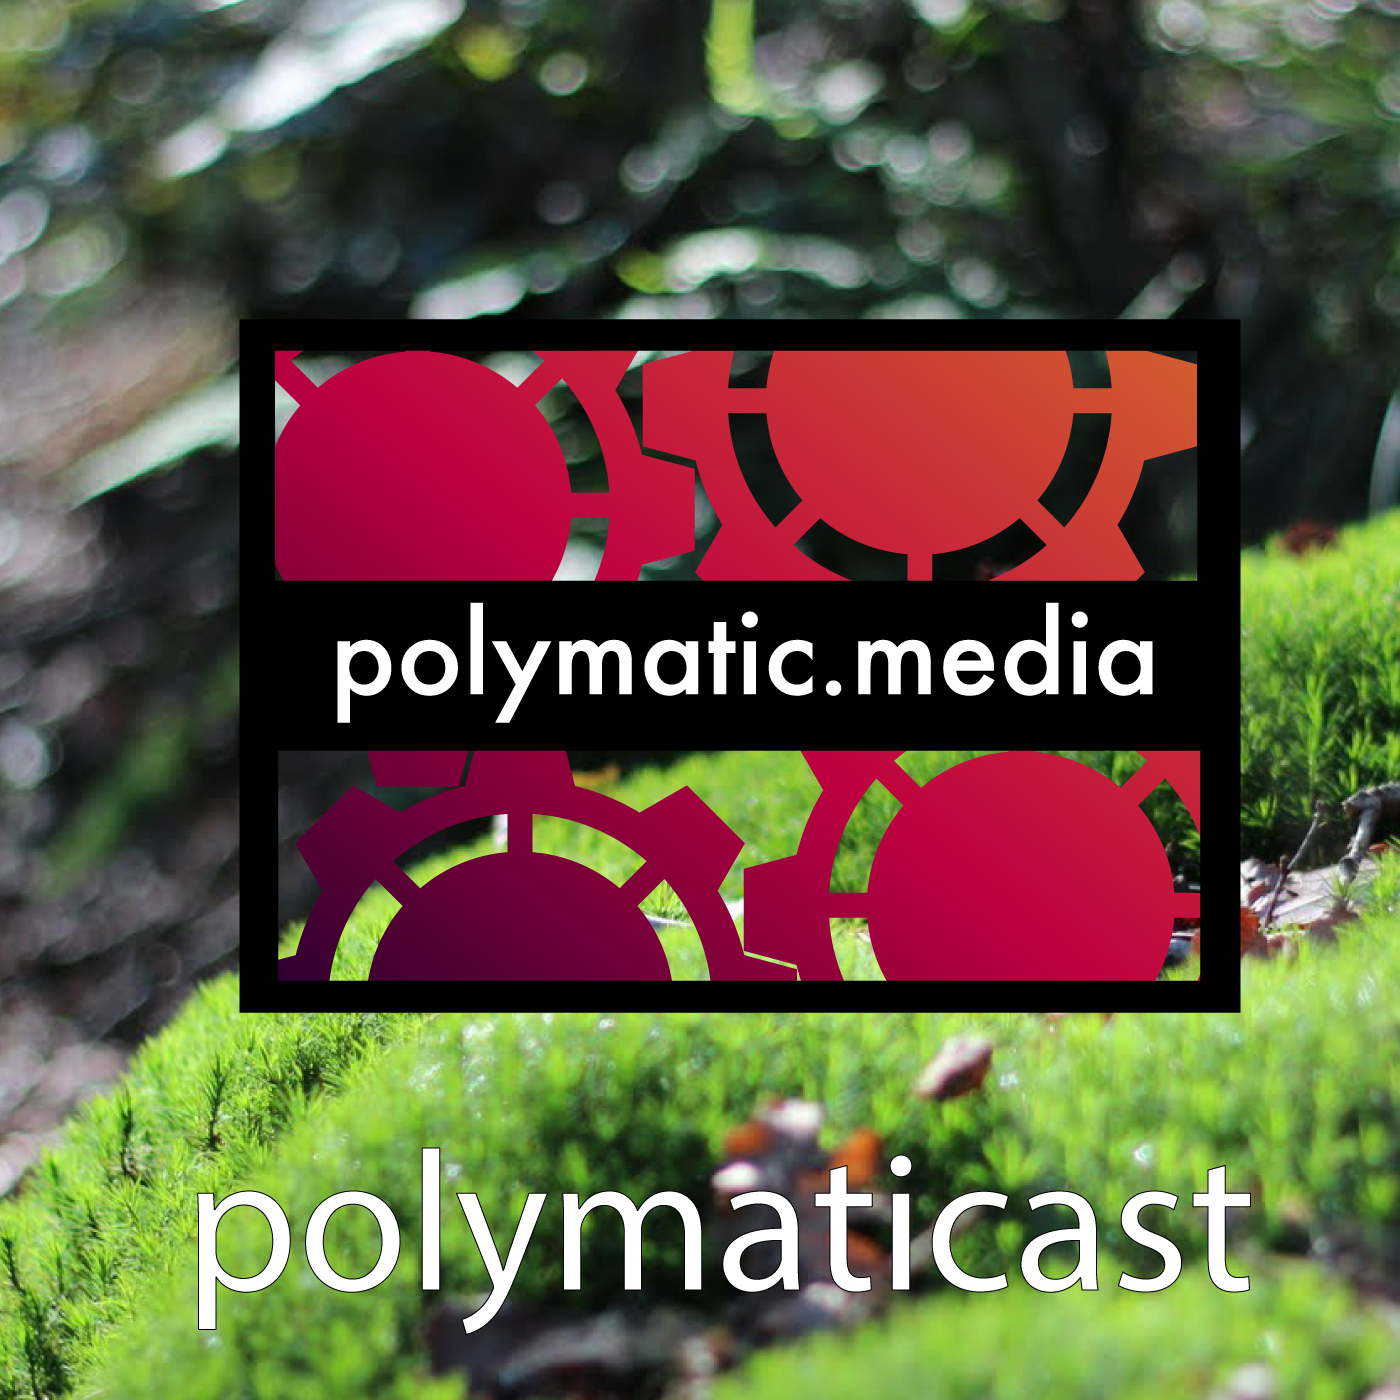 Polymaticast 42 – Finish those wasps!